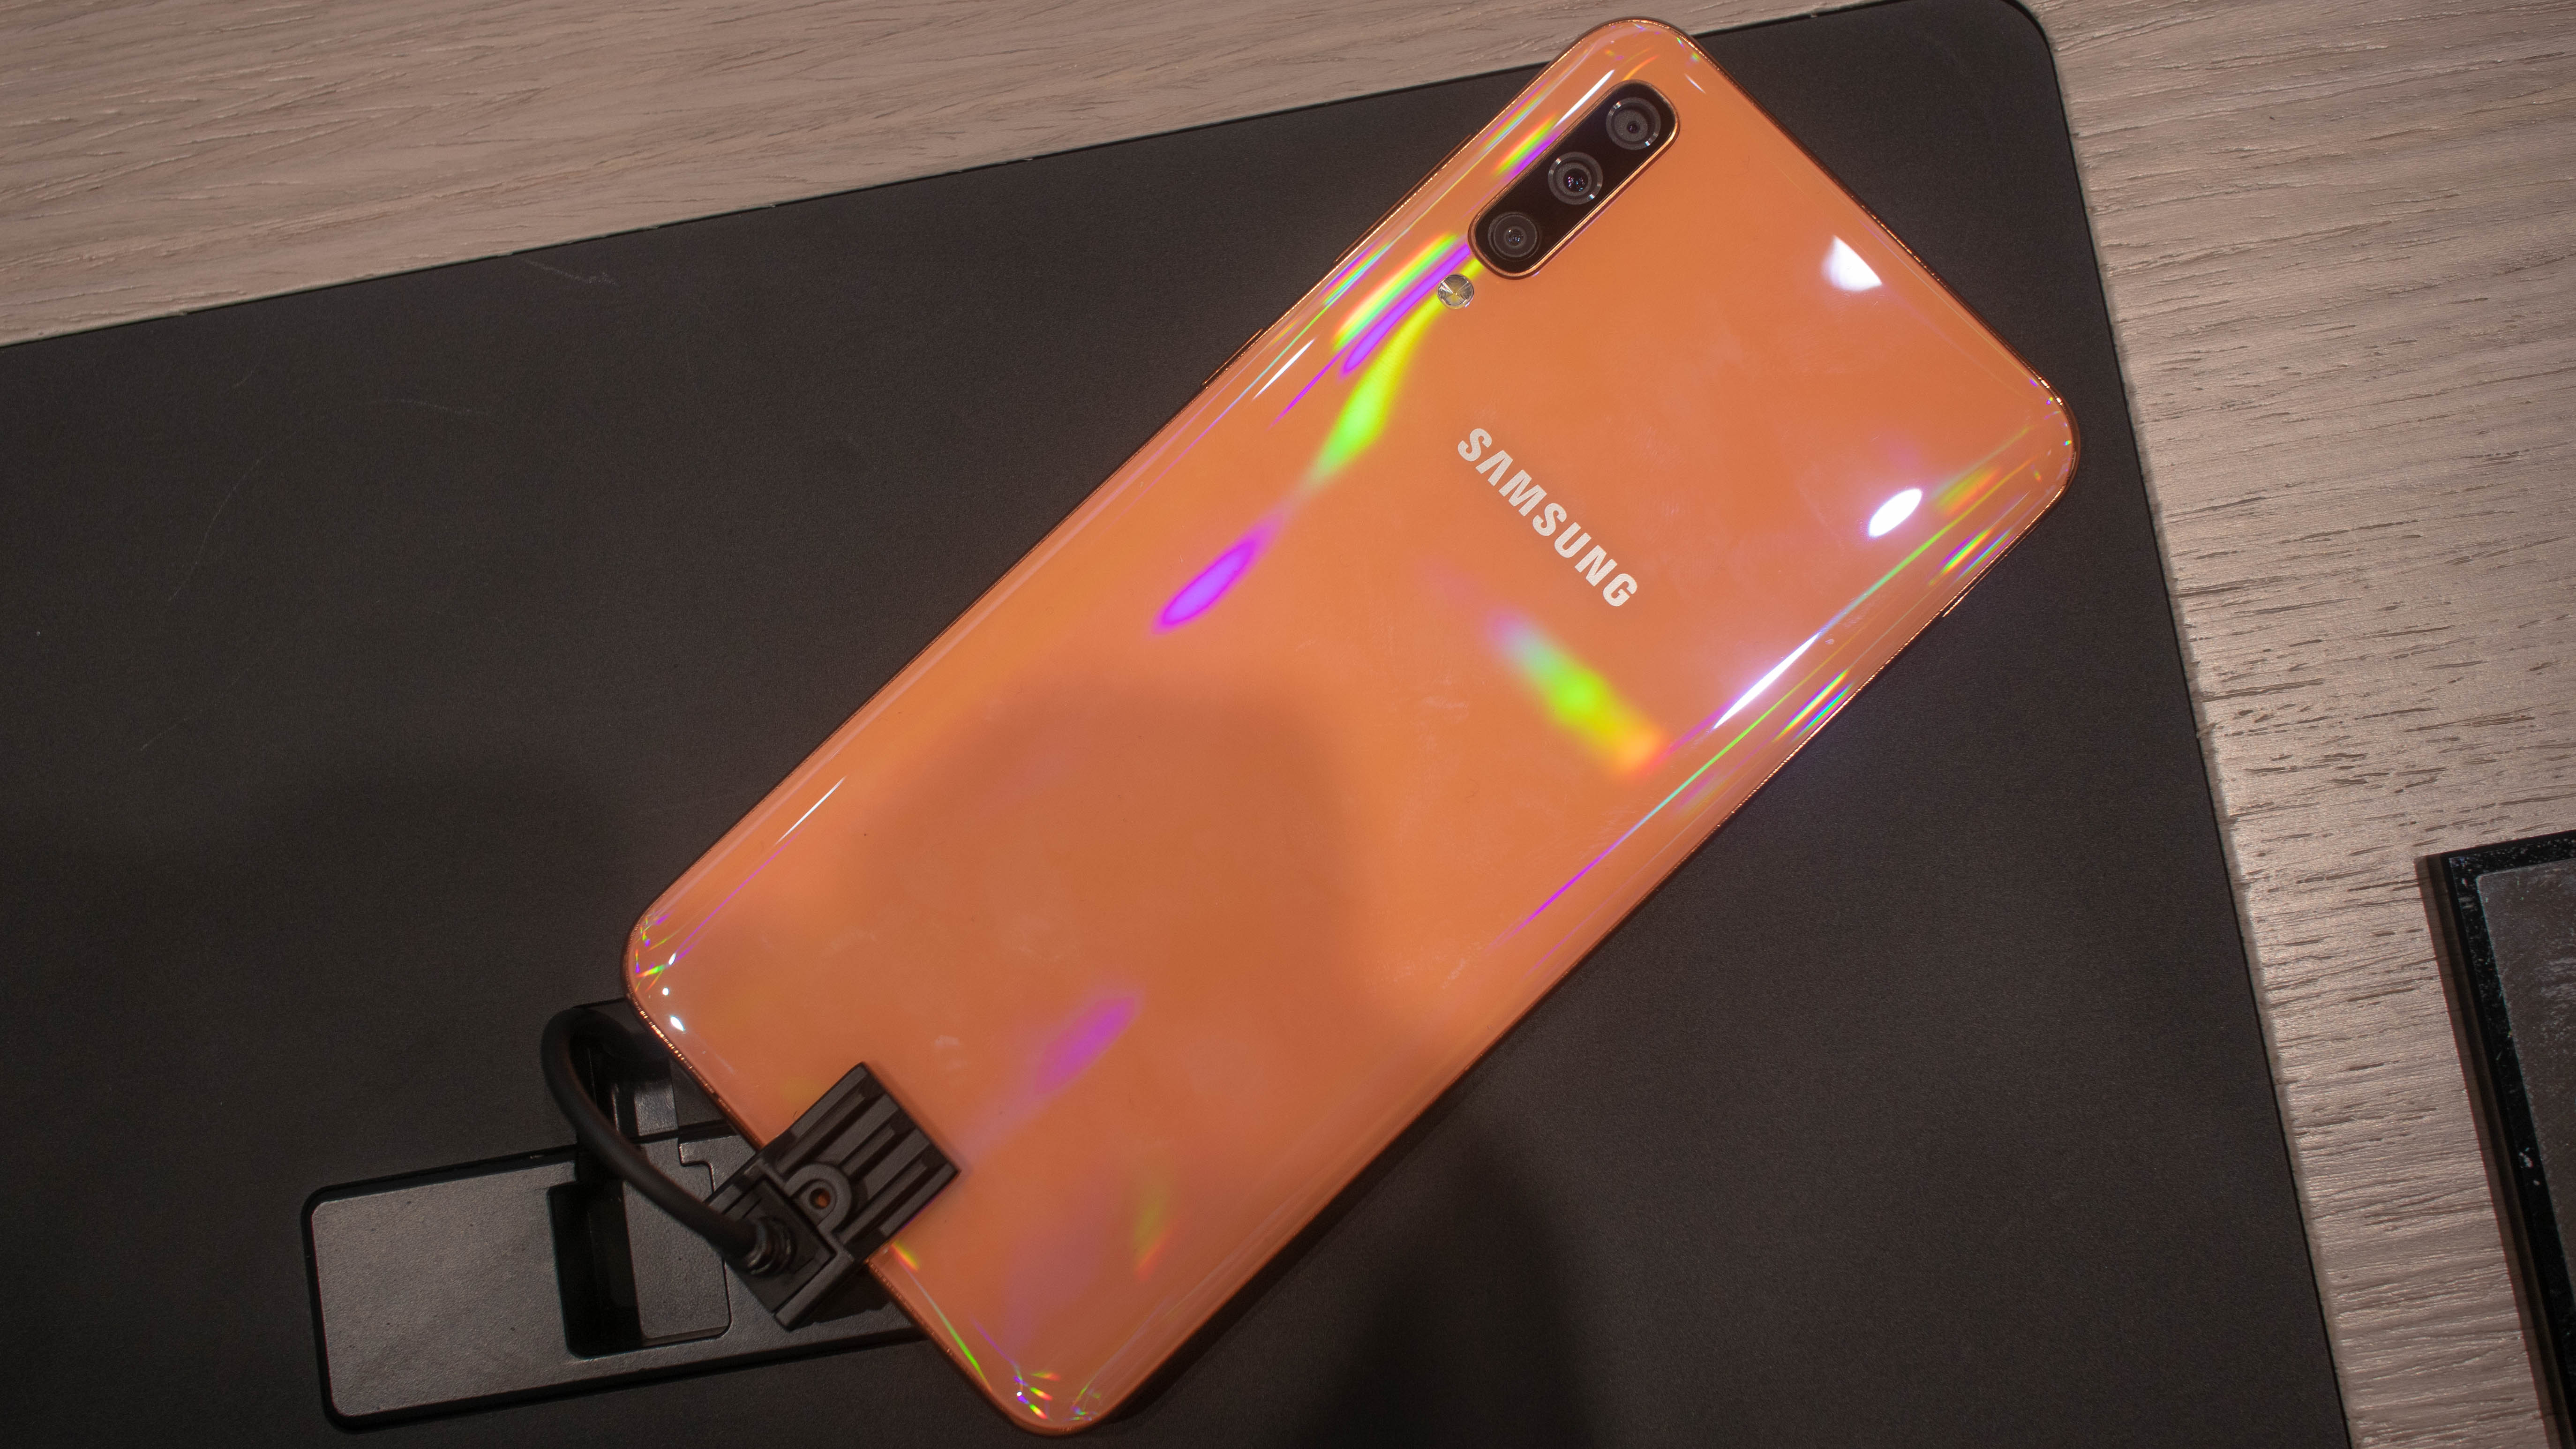 XFgCRCJiYQY7PSWmm7fmnh - Samsung Galaxy A50 vs Galaxy A80: which affordable phone is best for you?